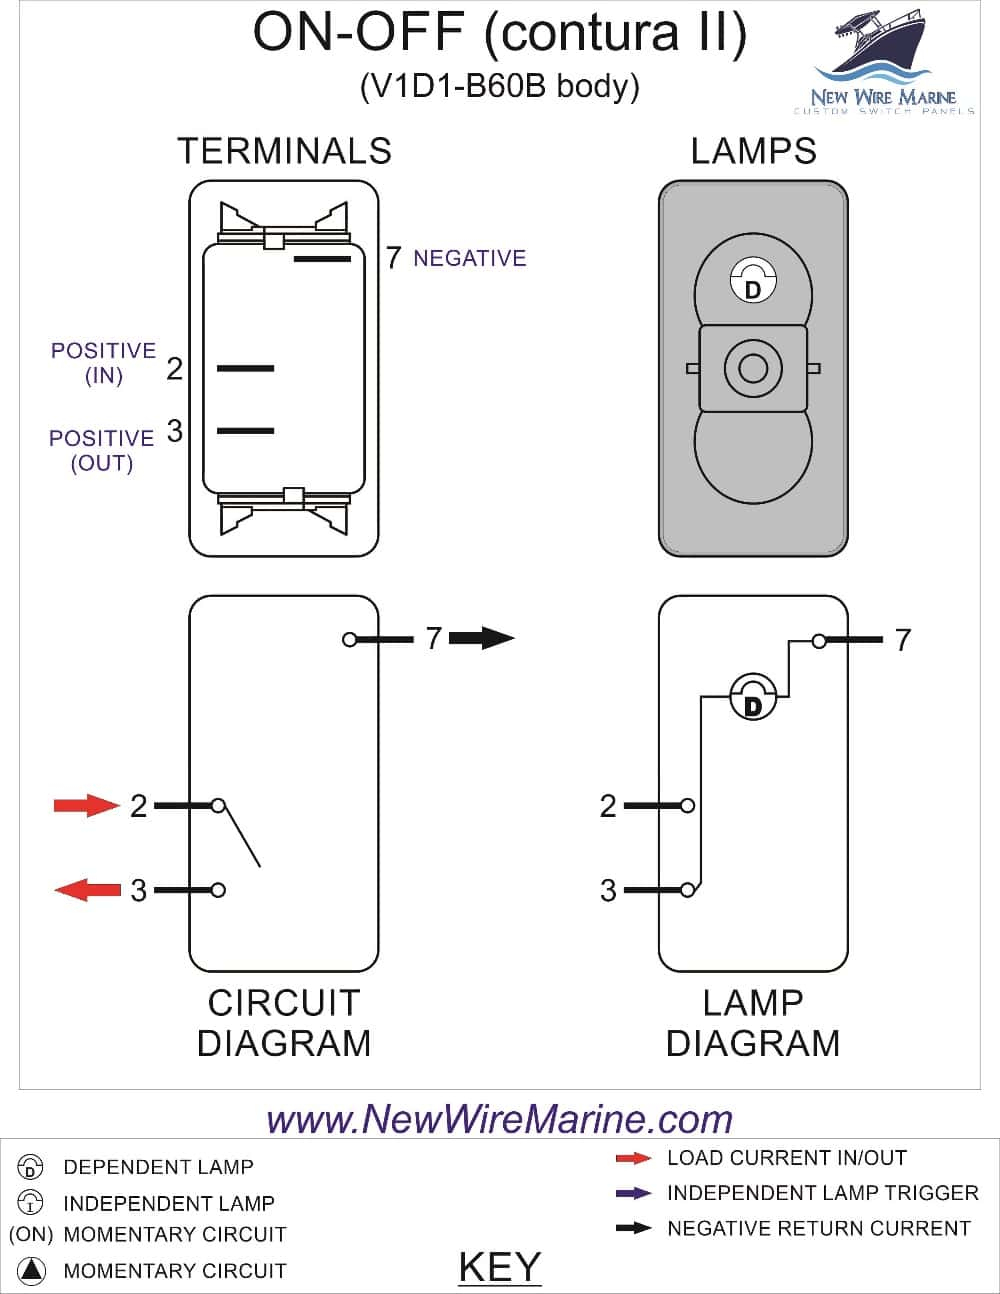 Lt Illuminated Carling Switch Wiring Diagram - Electrical Schematic - Carlingswitch Wiring Diagram